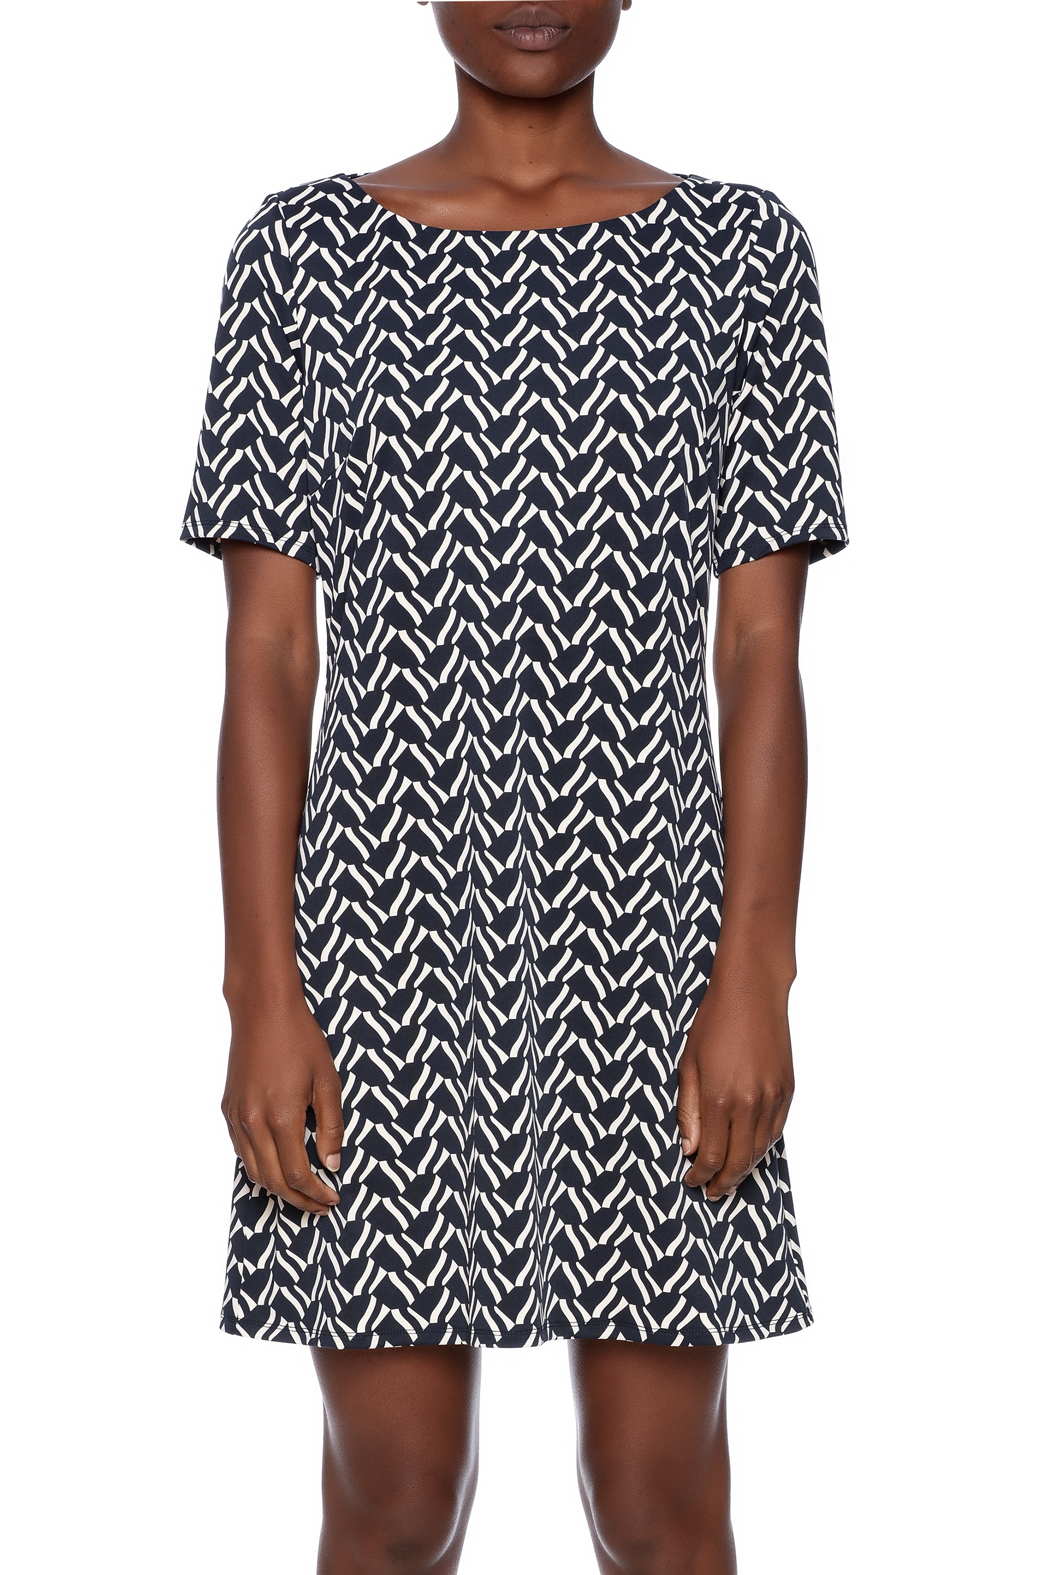 Julie Brown NYC Short Sleeve Dress - Side Cropped Image